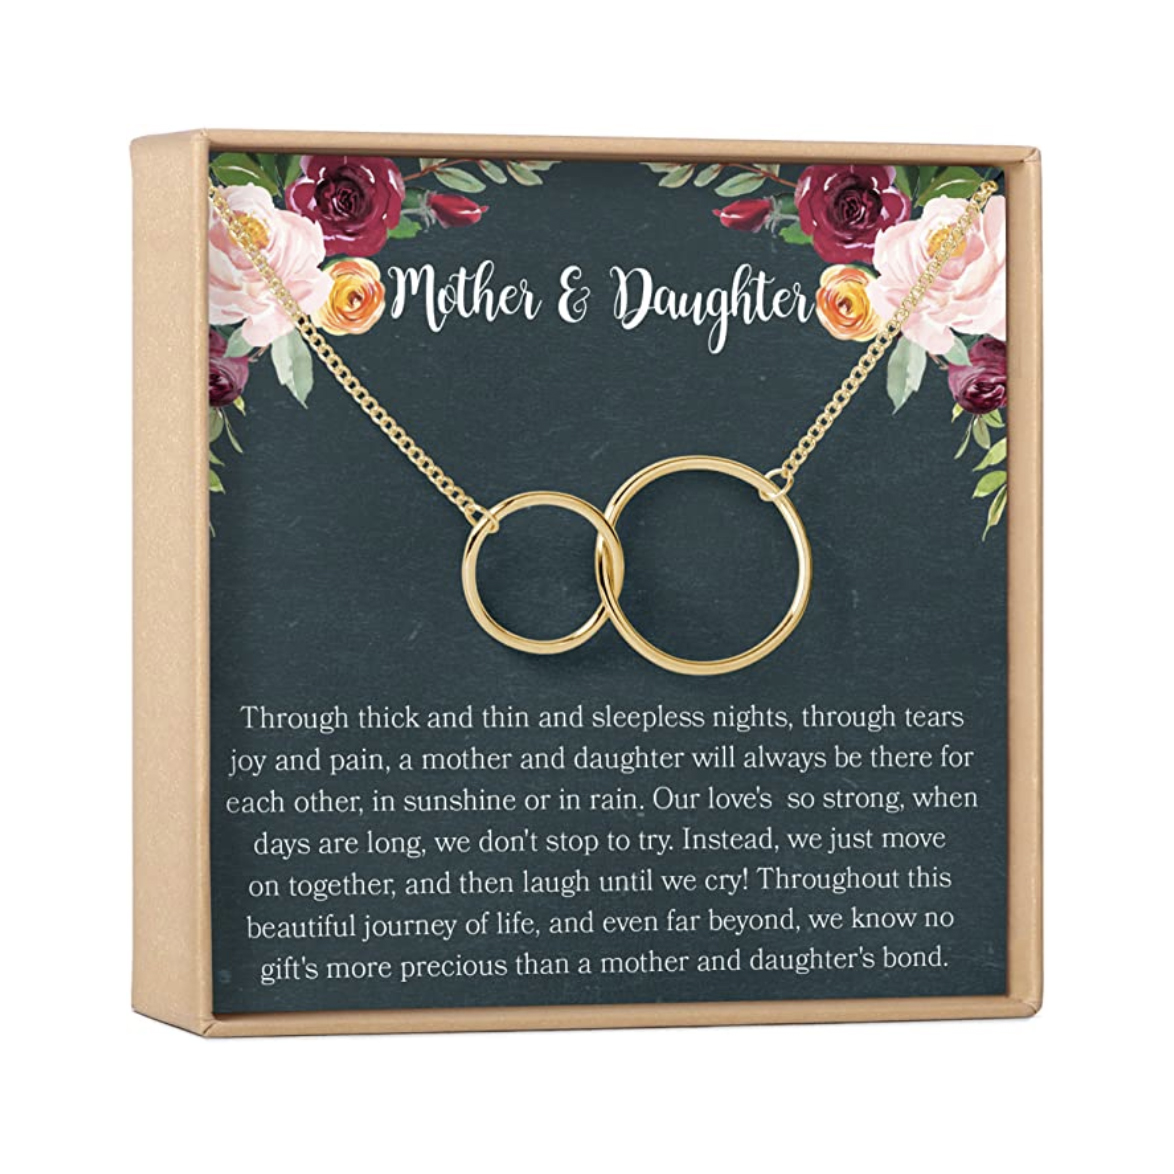 Mother & Daughter Necklace